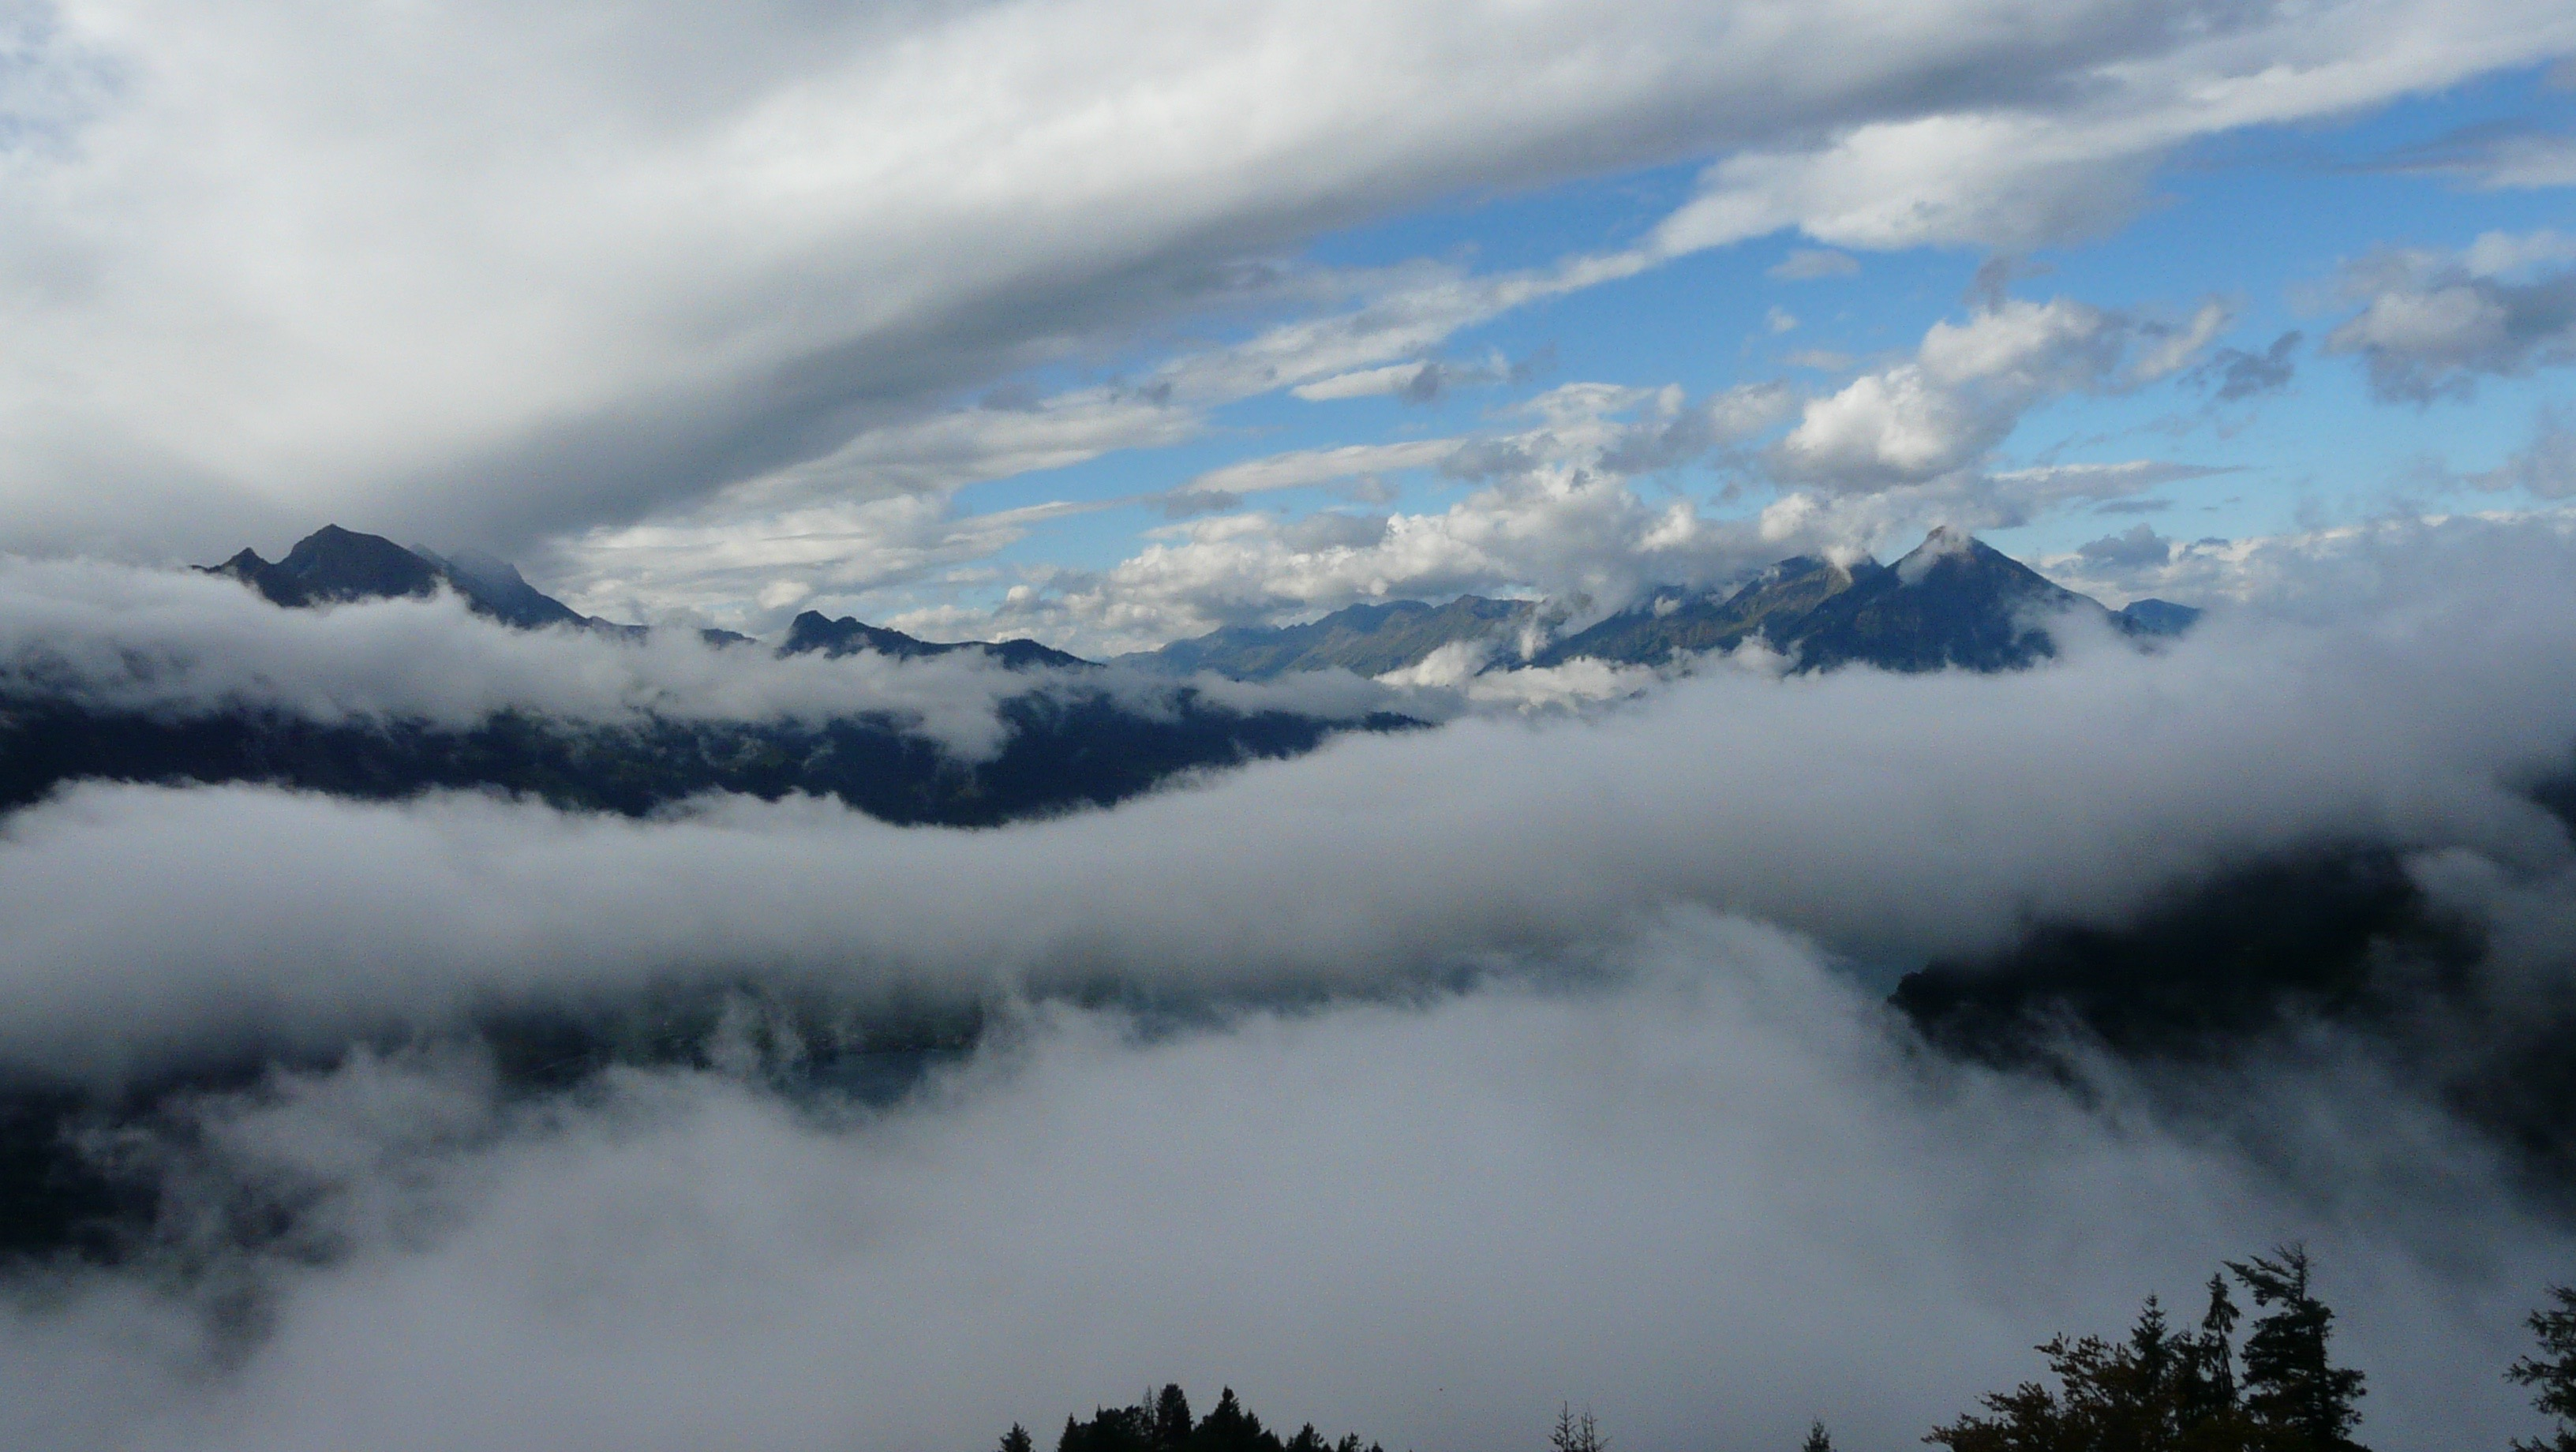 Clouds at Harder Kulm, above Interlaken